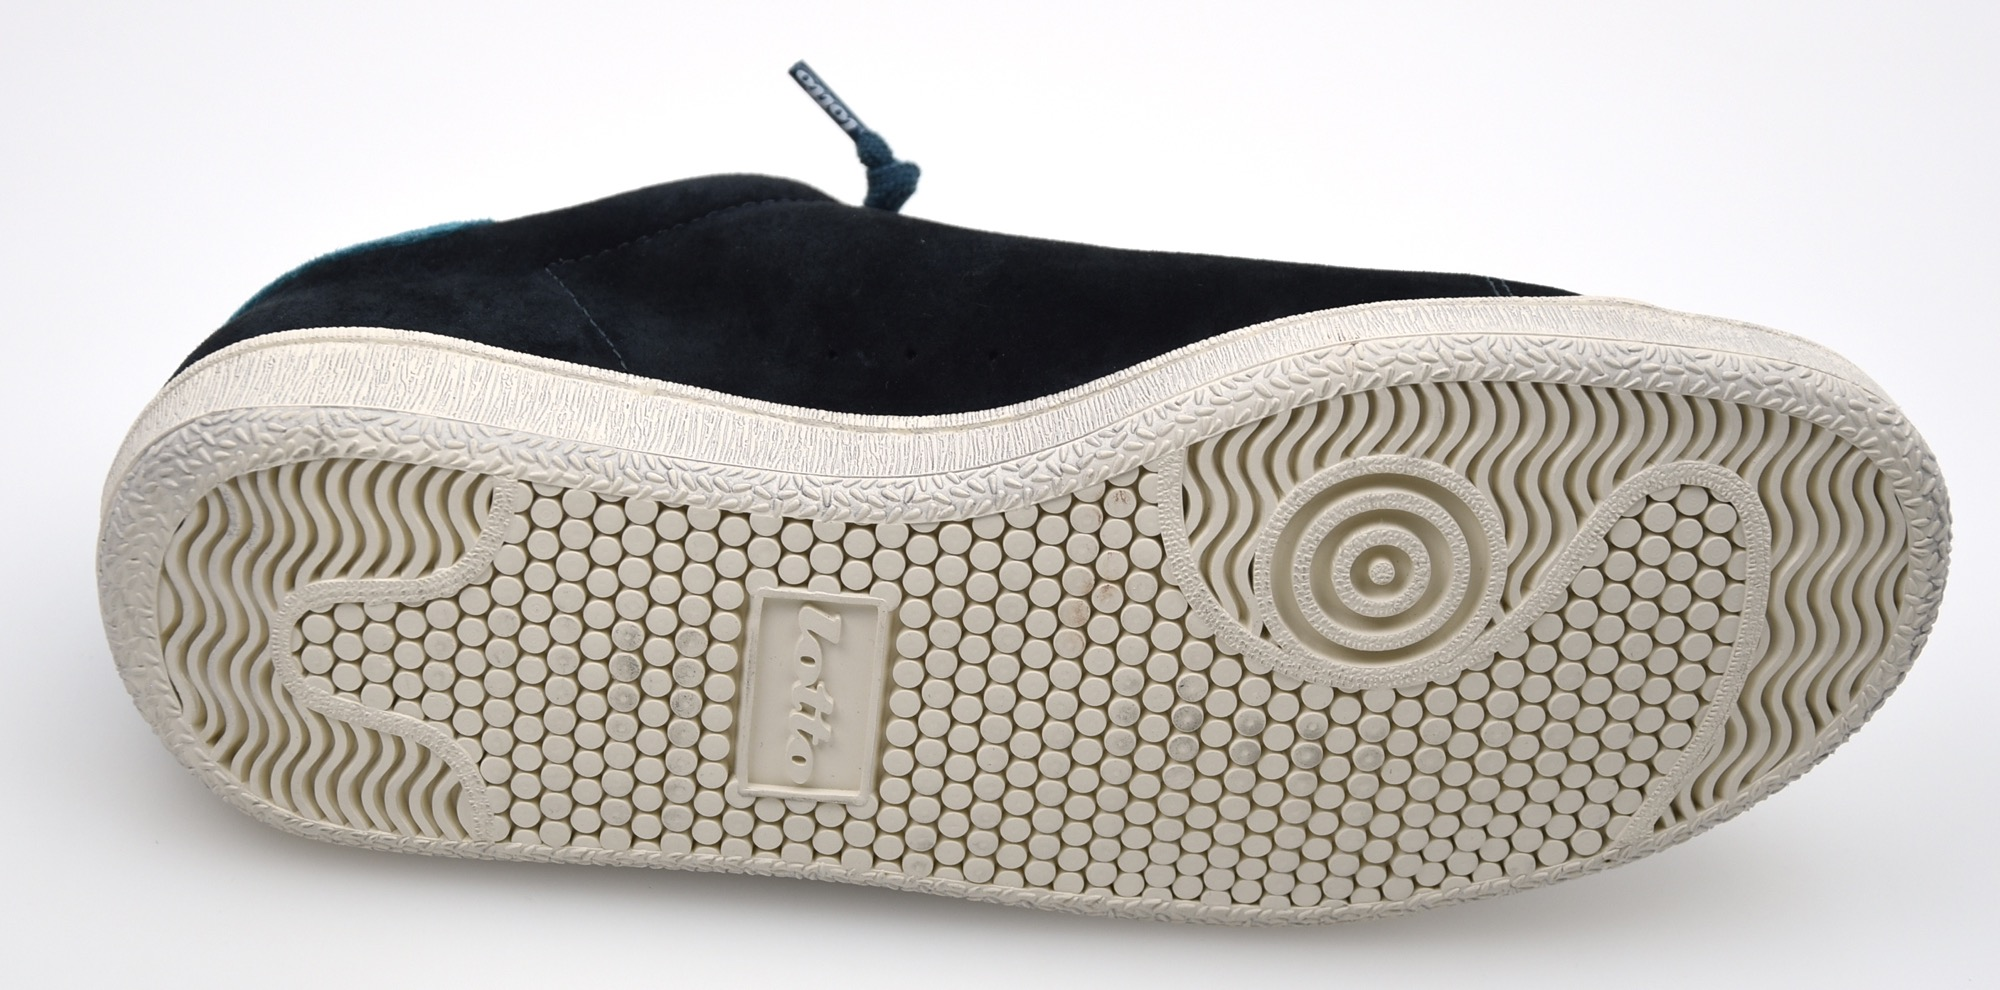 LOTTO LEGGENDA MAN SNEAKER SHOES CASUAL FREE TIME SUEDE CODE S5795 WITHOUT  BOX 102d2f85660